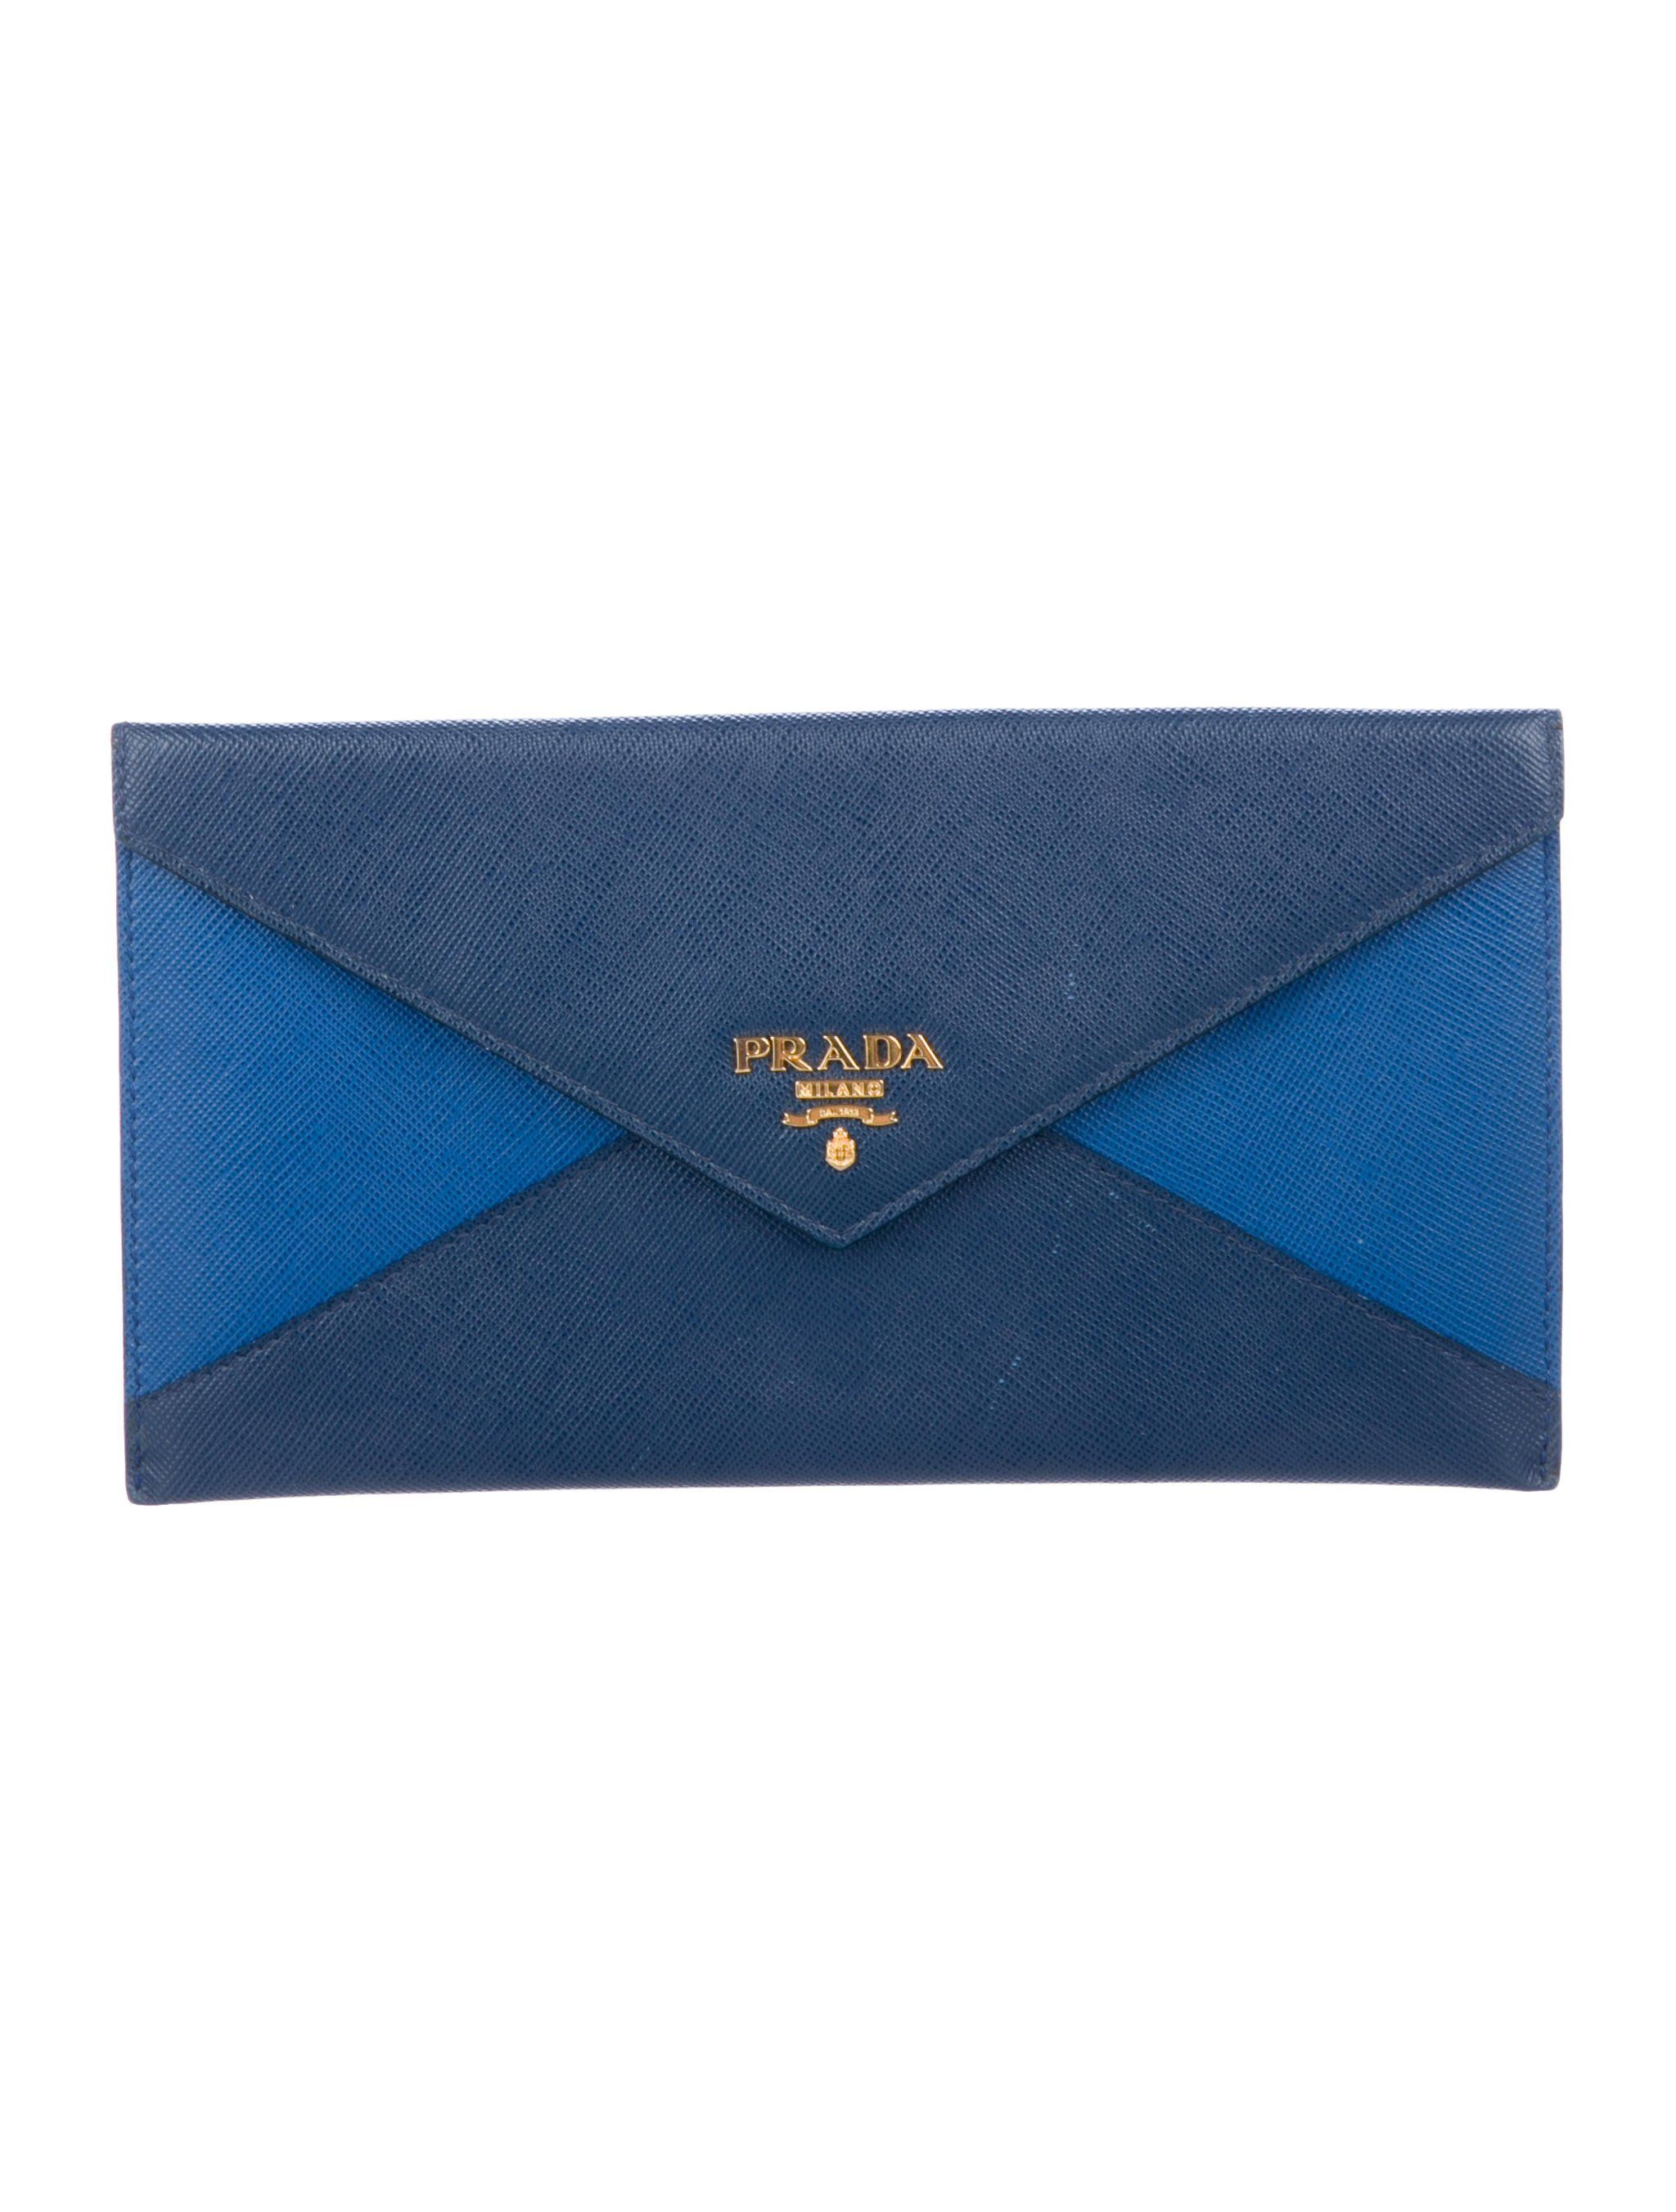 c45bd968eb24 Blue and navy Saffiano leather Prada envelope wallet with gold-tone  hardware, exterior zip